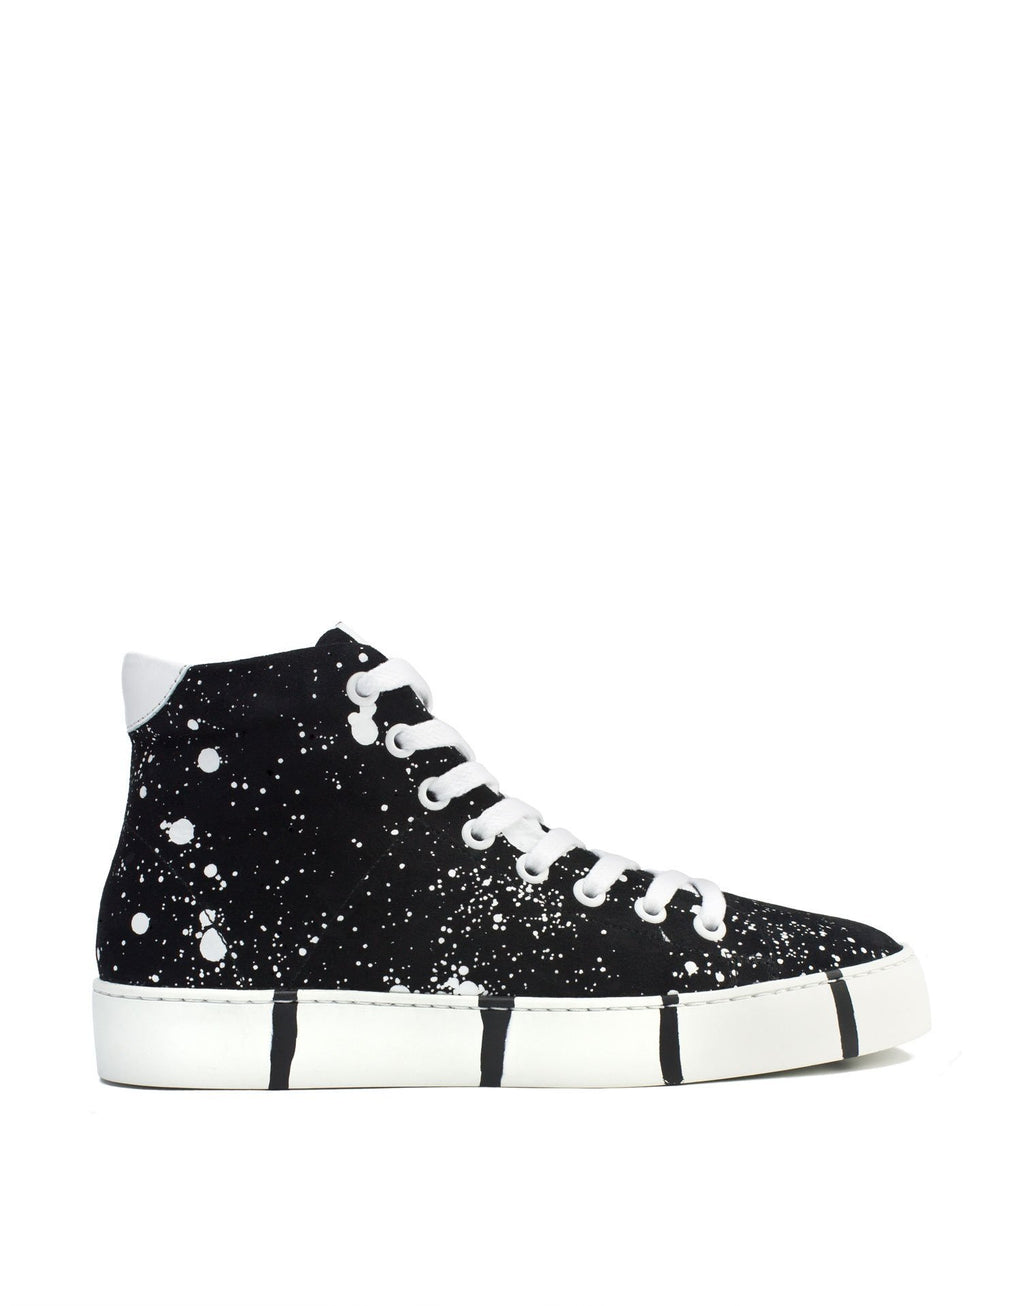 Black and White Splash High Top Sneaker